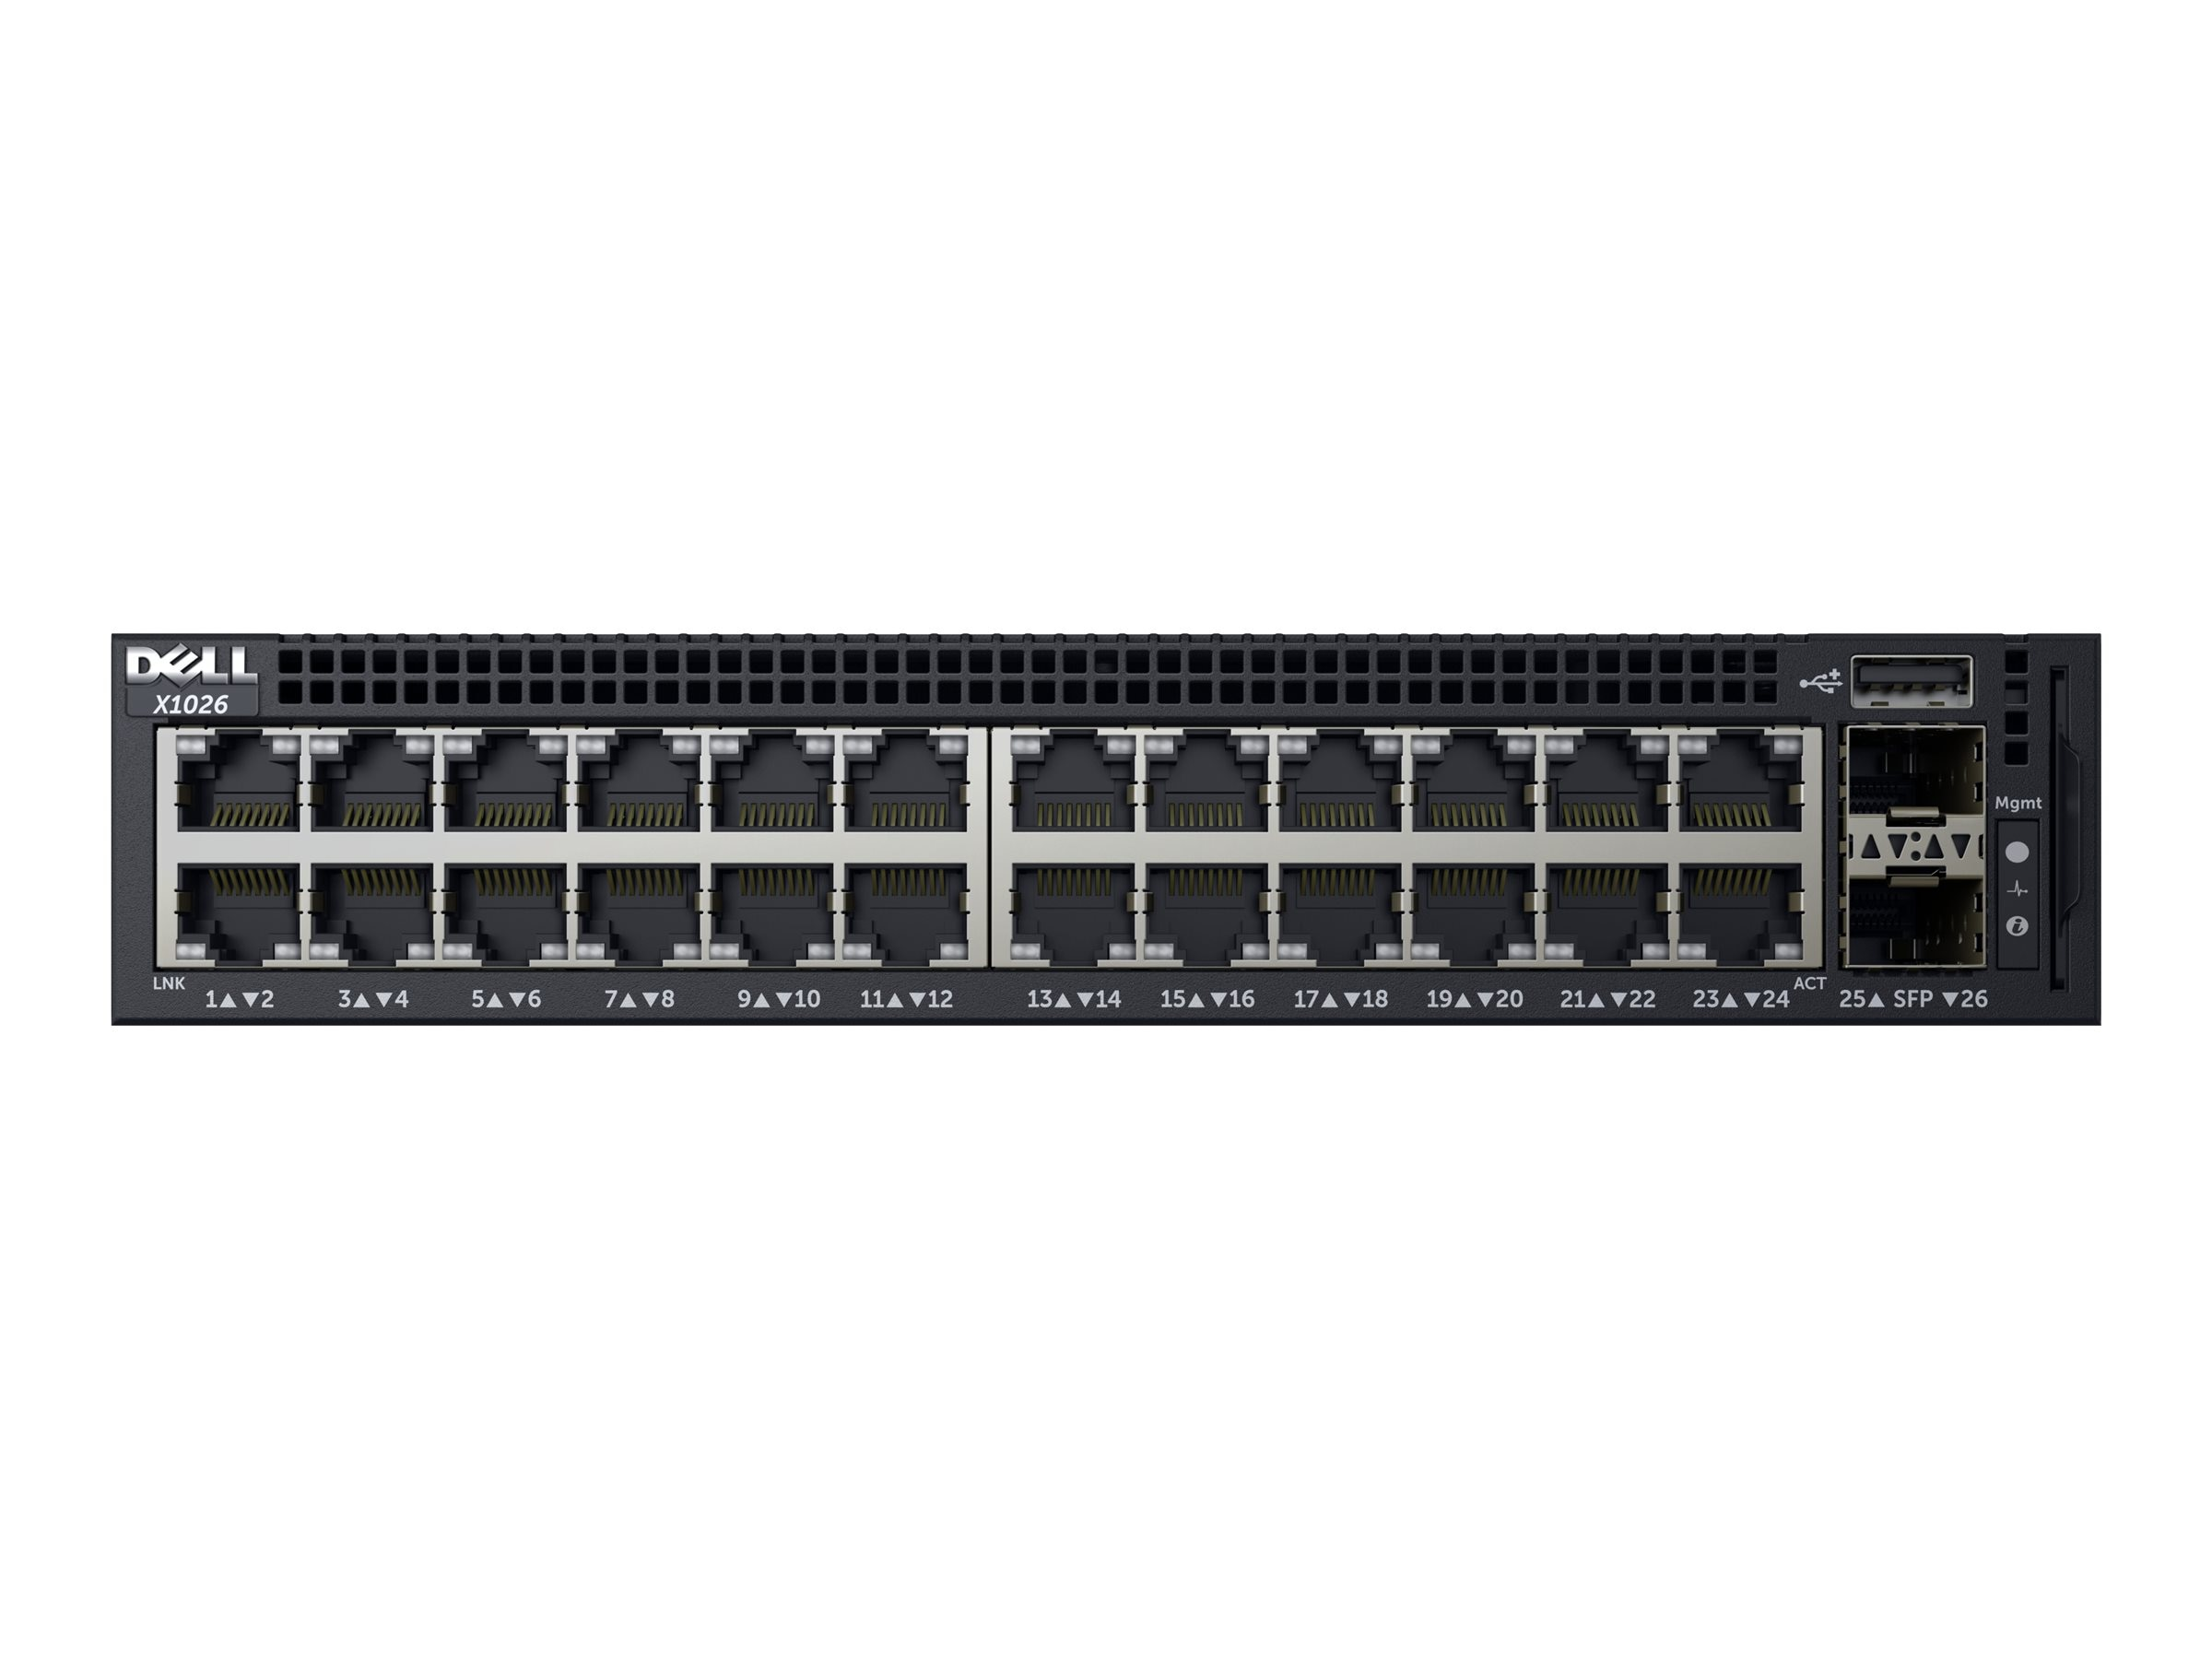 Dell x1026 24-Port 1GbE Smart Web Managed Switch with 2x1GbE SFP Ports, 463-5537